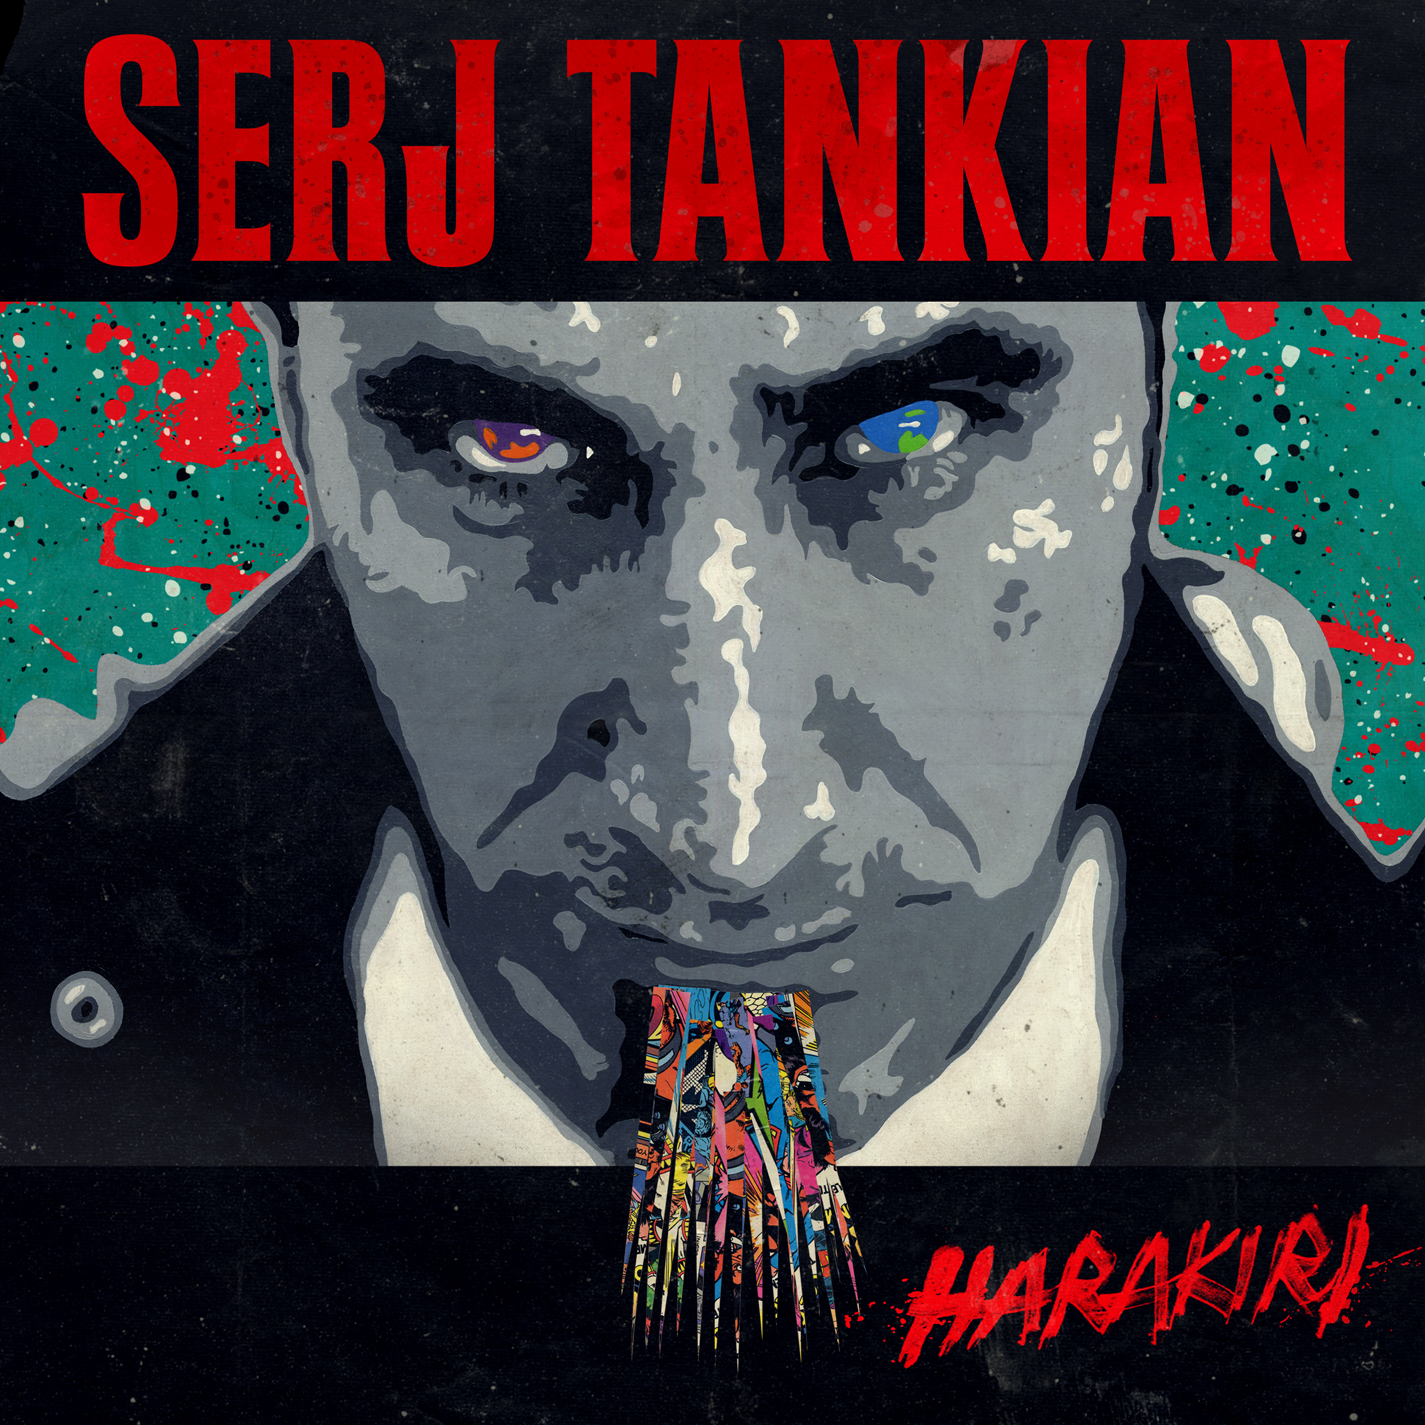 Serj-Tankian-Harakiri1.jpg